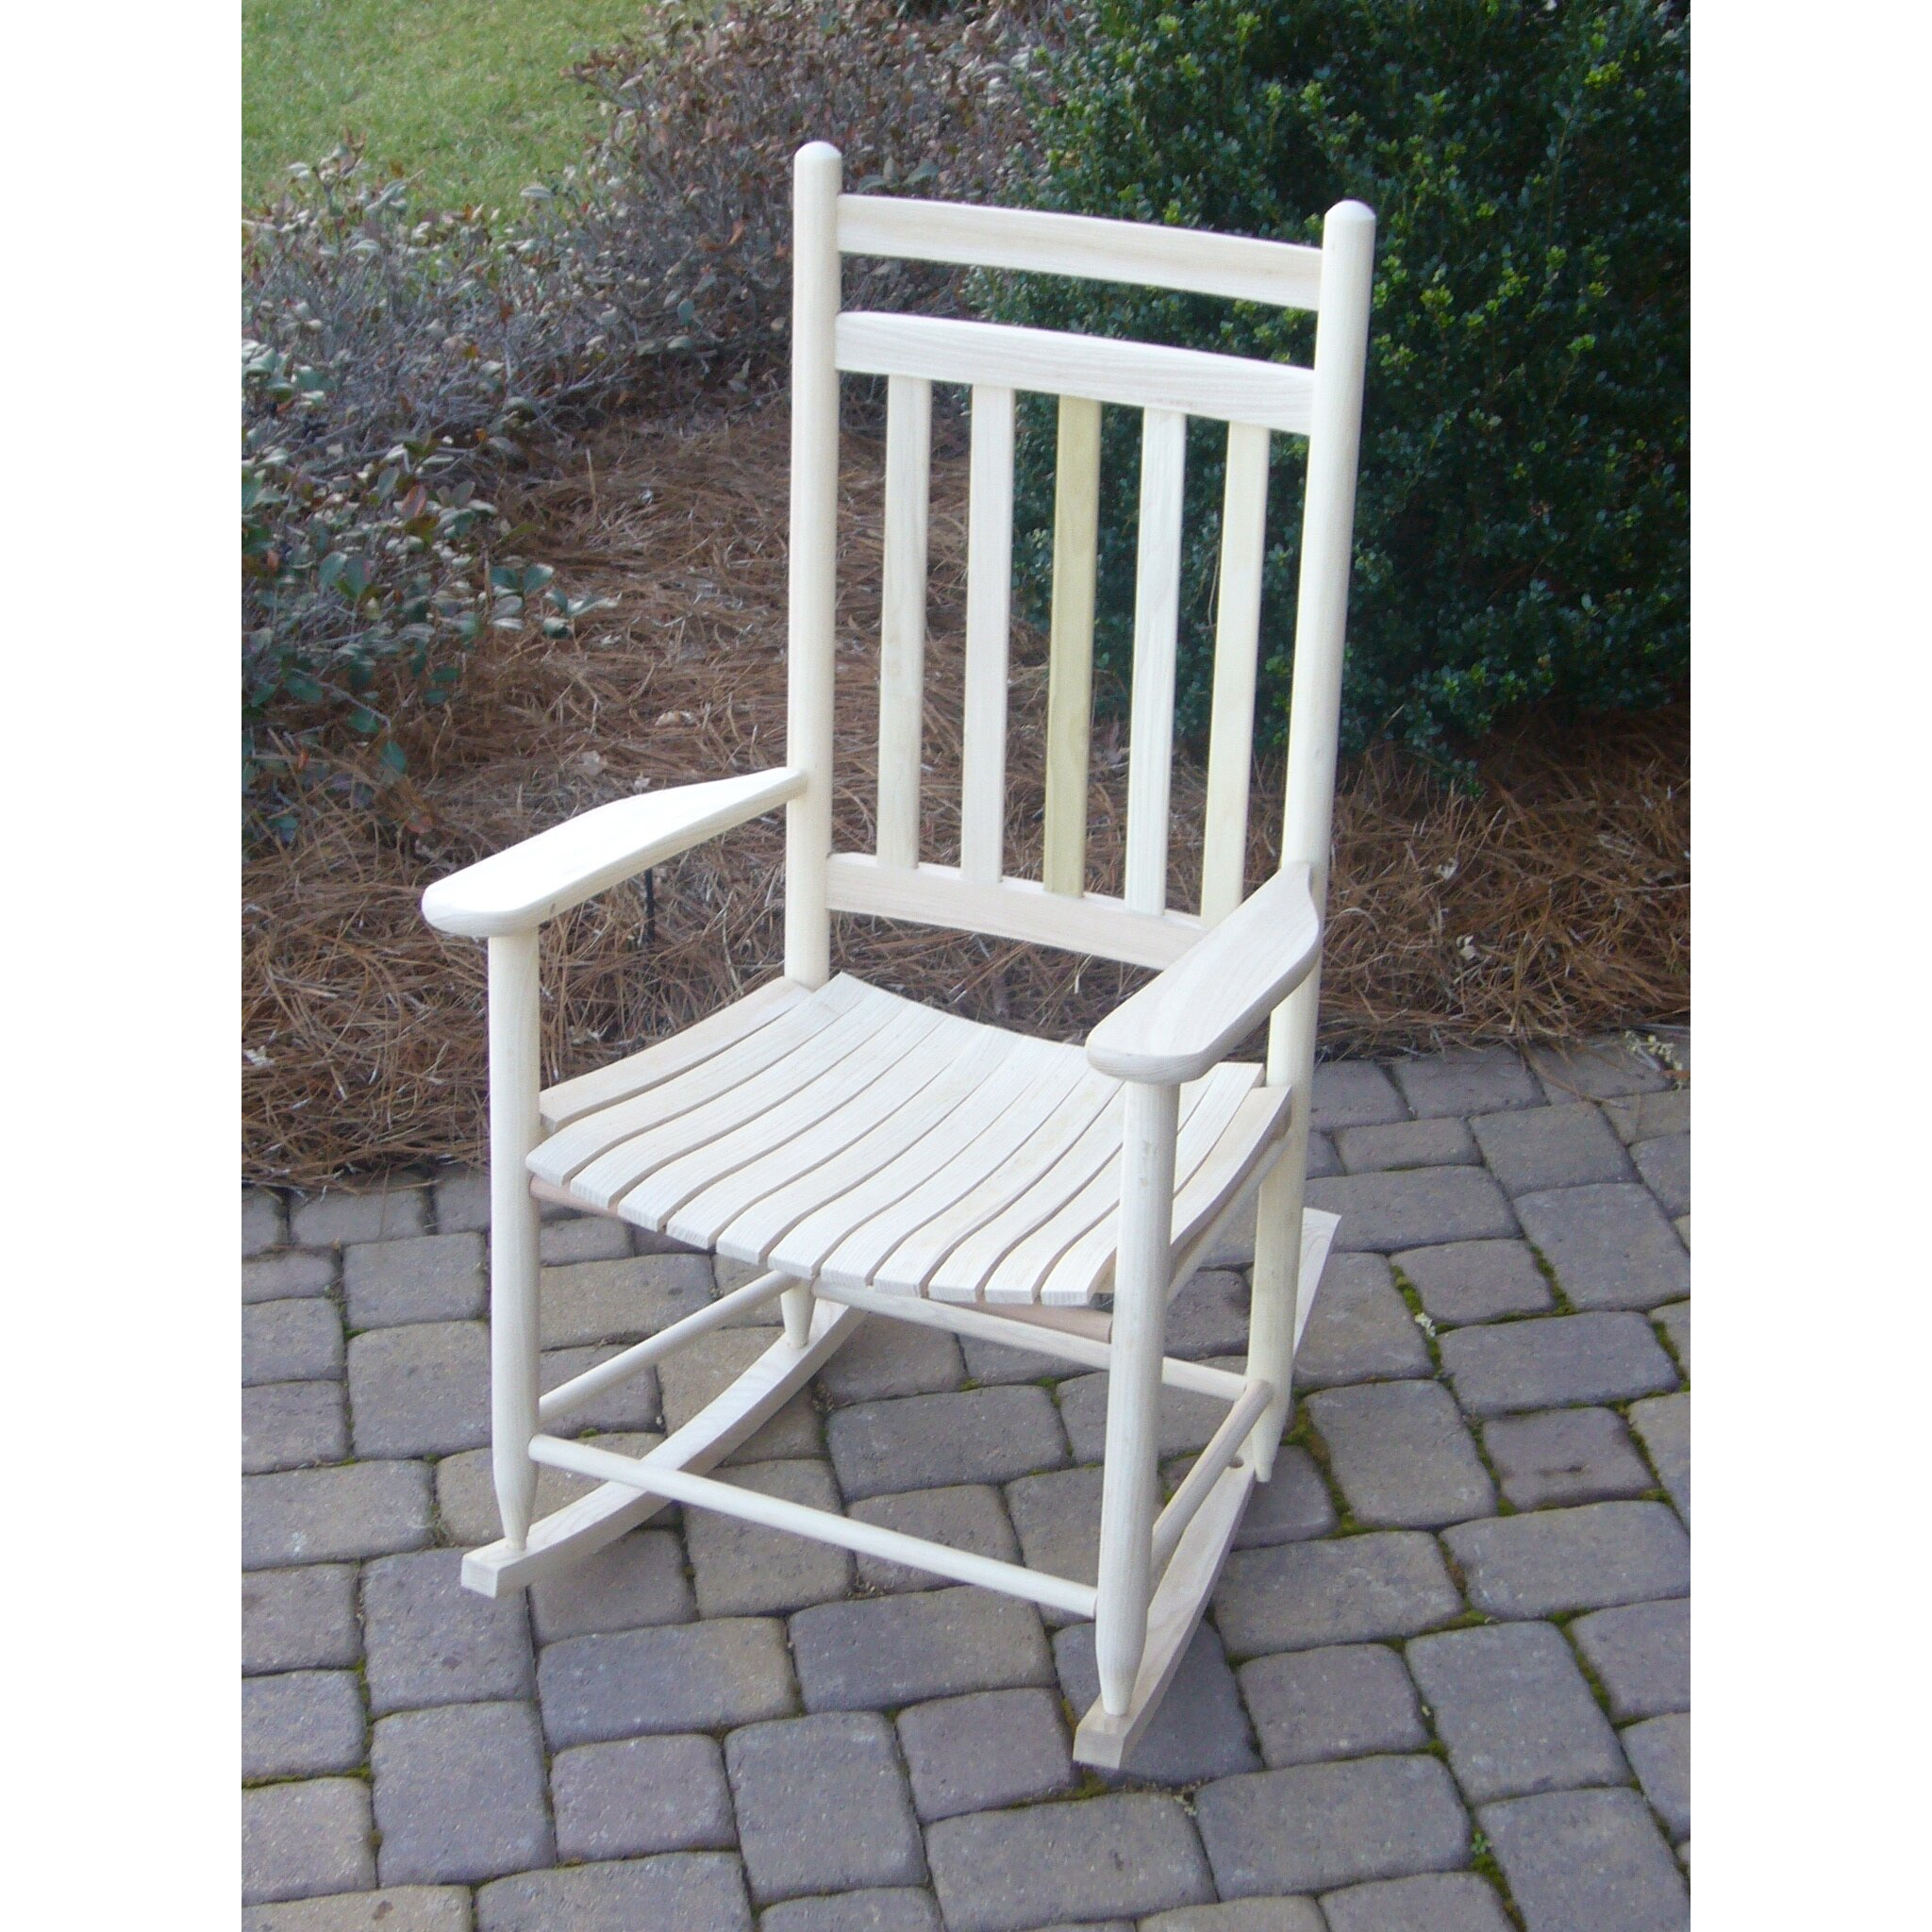 ... Company 3 Piece Adult Slat Seat Porch Rocking Chair and Table Set